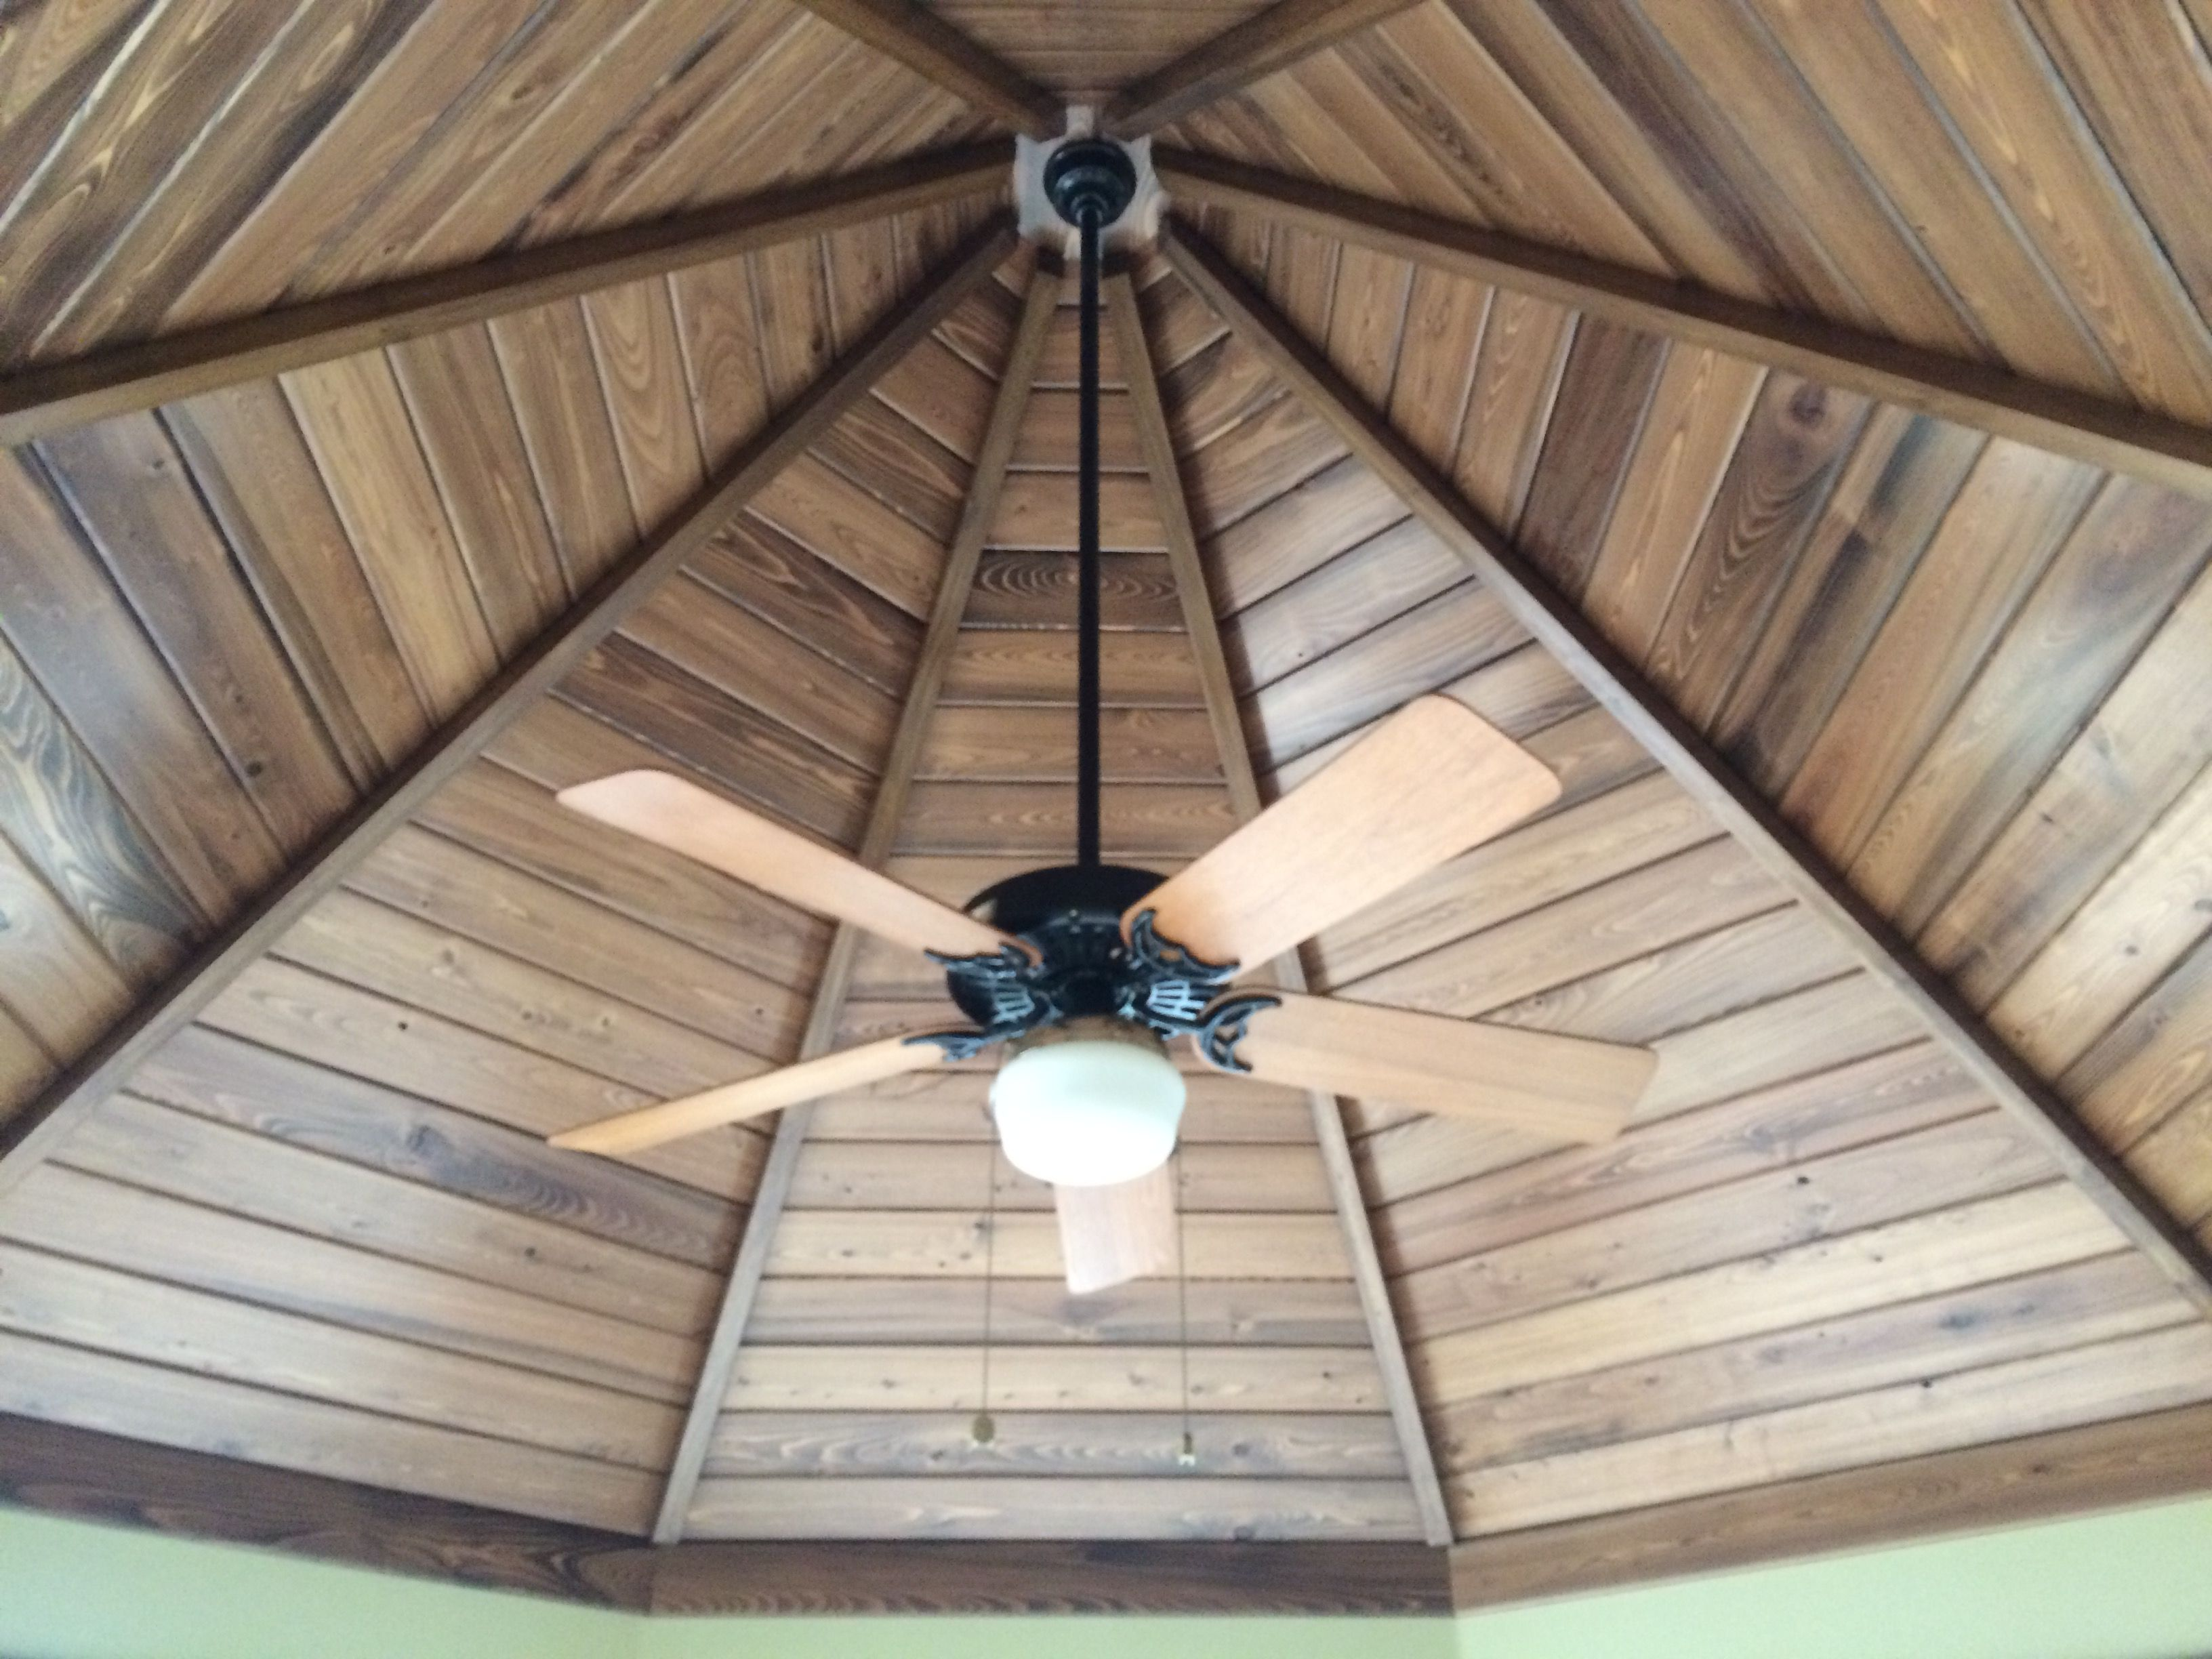 2x2 Poplar Finished To Match Pre Finished Synergy Tongue And Groove Cypress Plywood Ceiling Home Remodeling Octagon